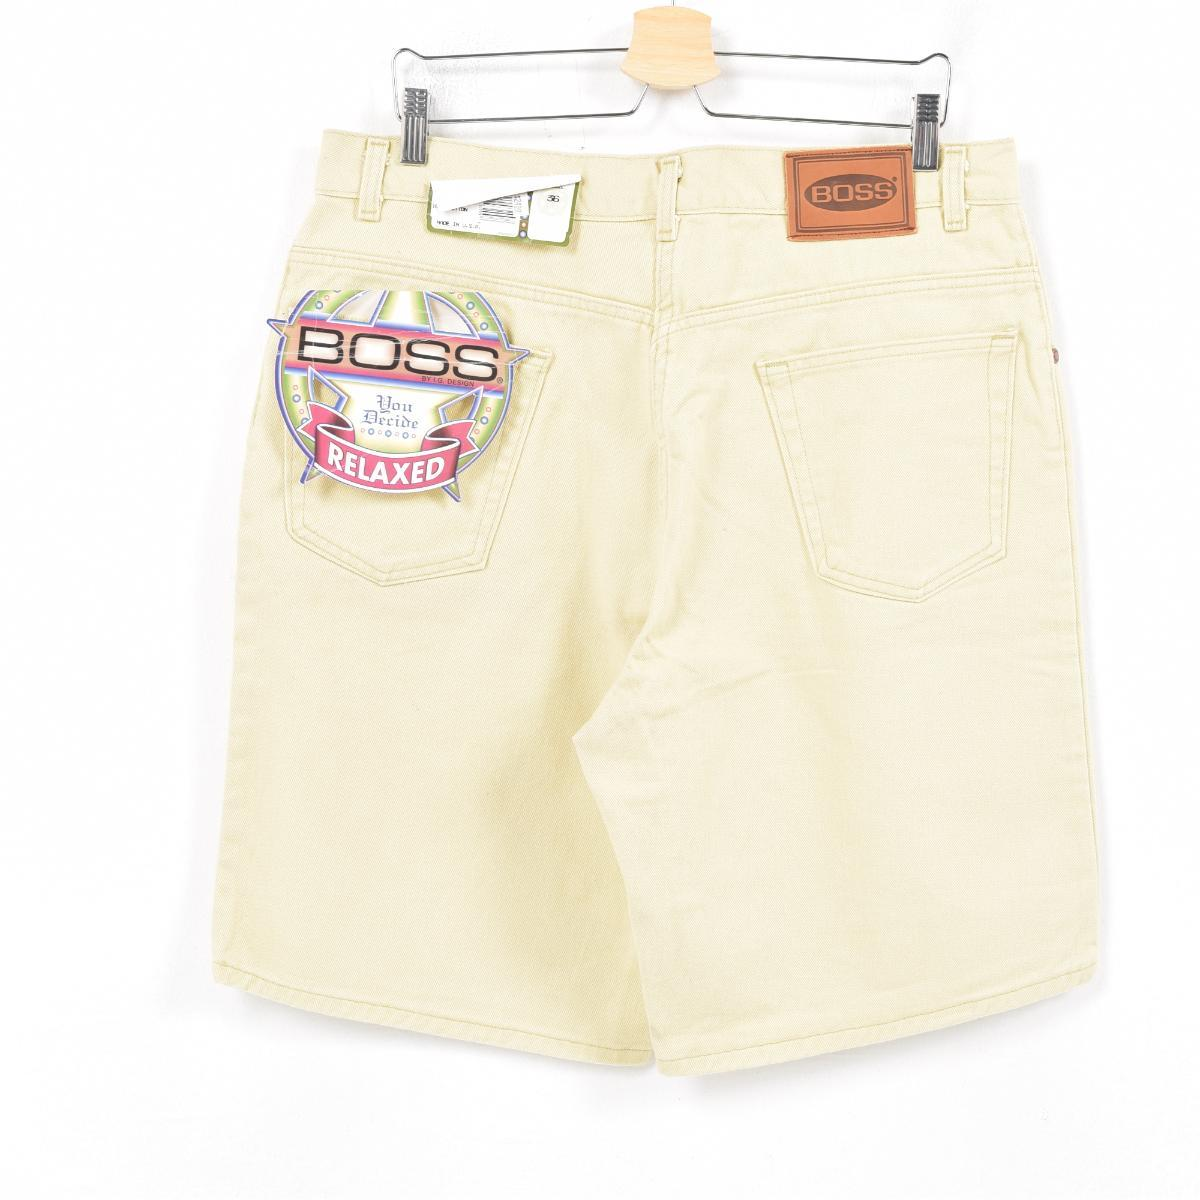 b8441577 Men w36 /war9812 made in boss BOSS color denim shorts short pants USA with  the dead stock DEADSTOCK flasher